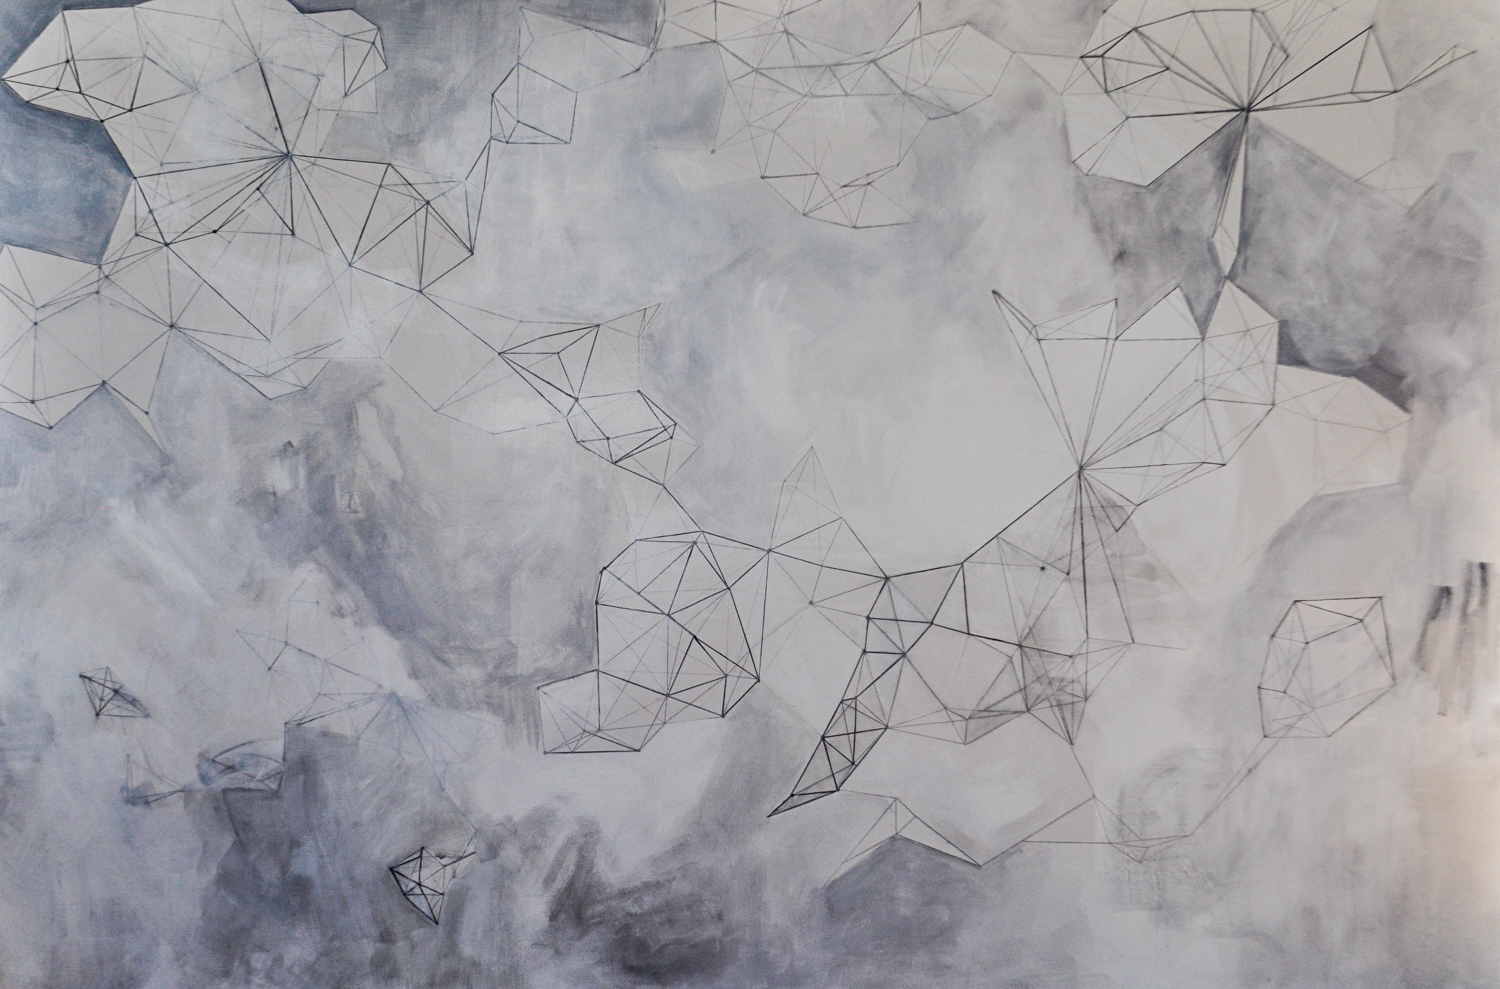 """The Future of Everything. Acrylic, ink, and charcoal on canvas. 48""""x 72"""""""